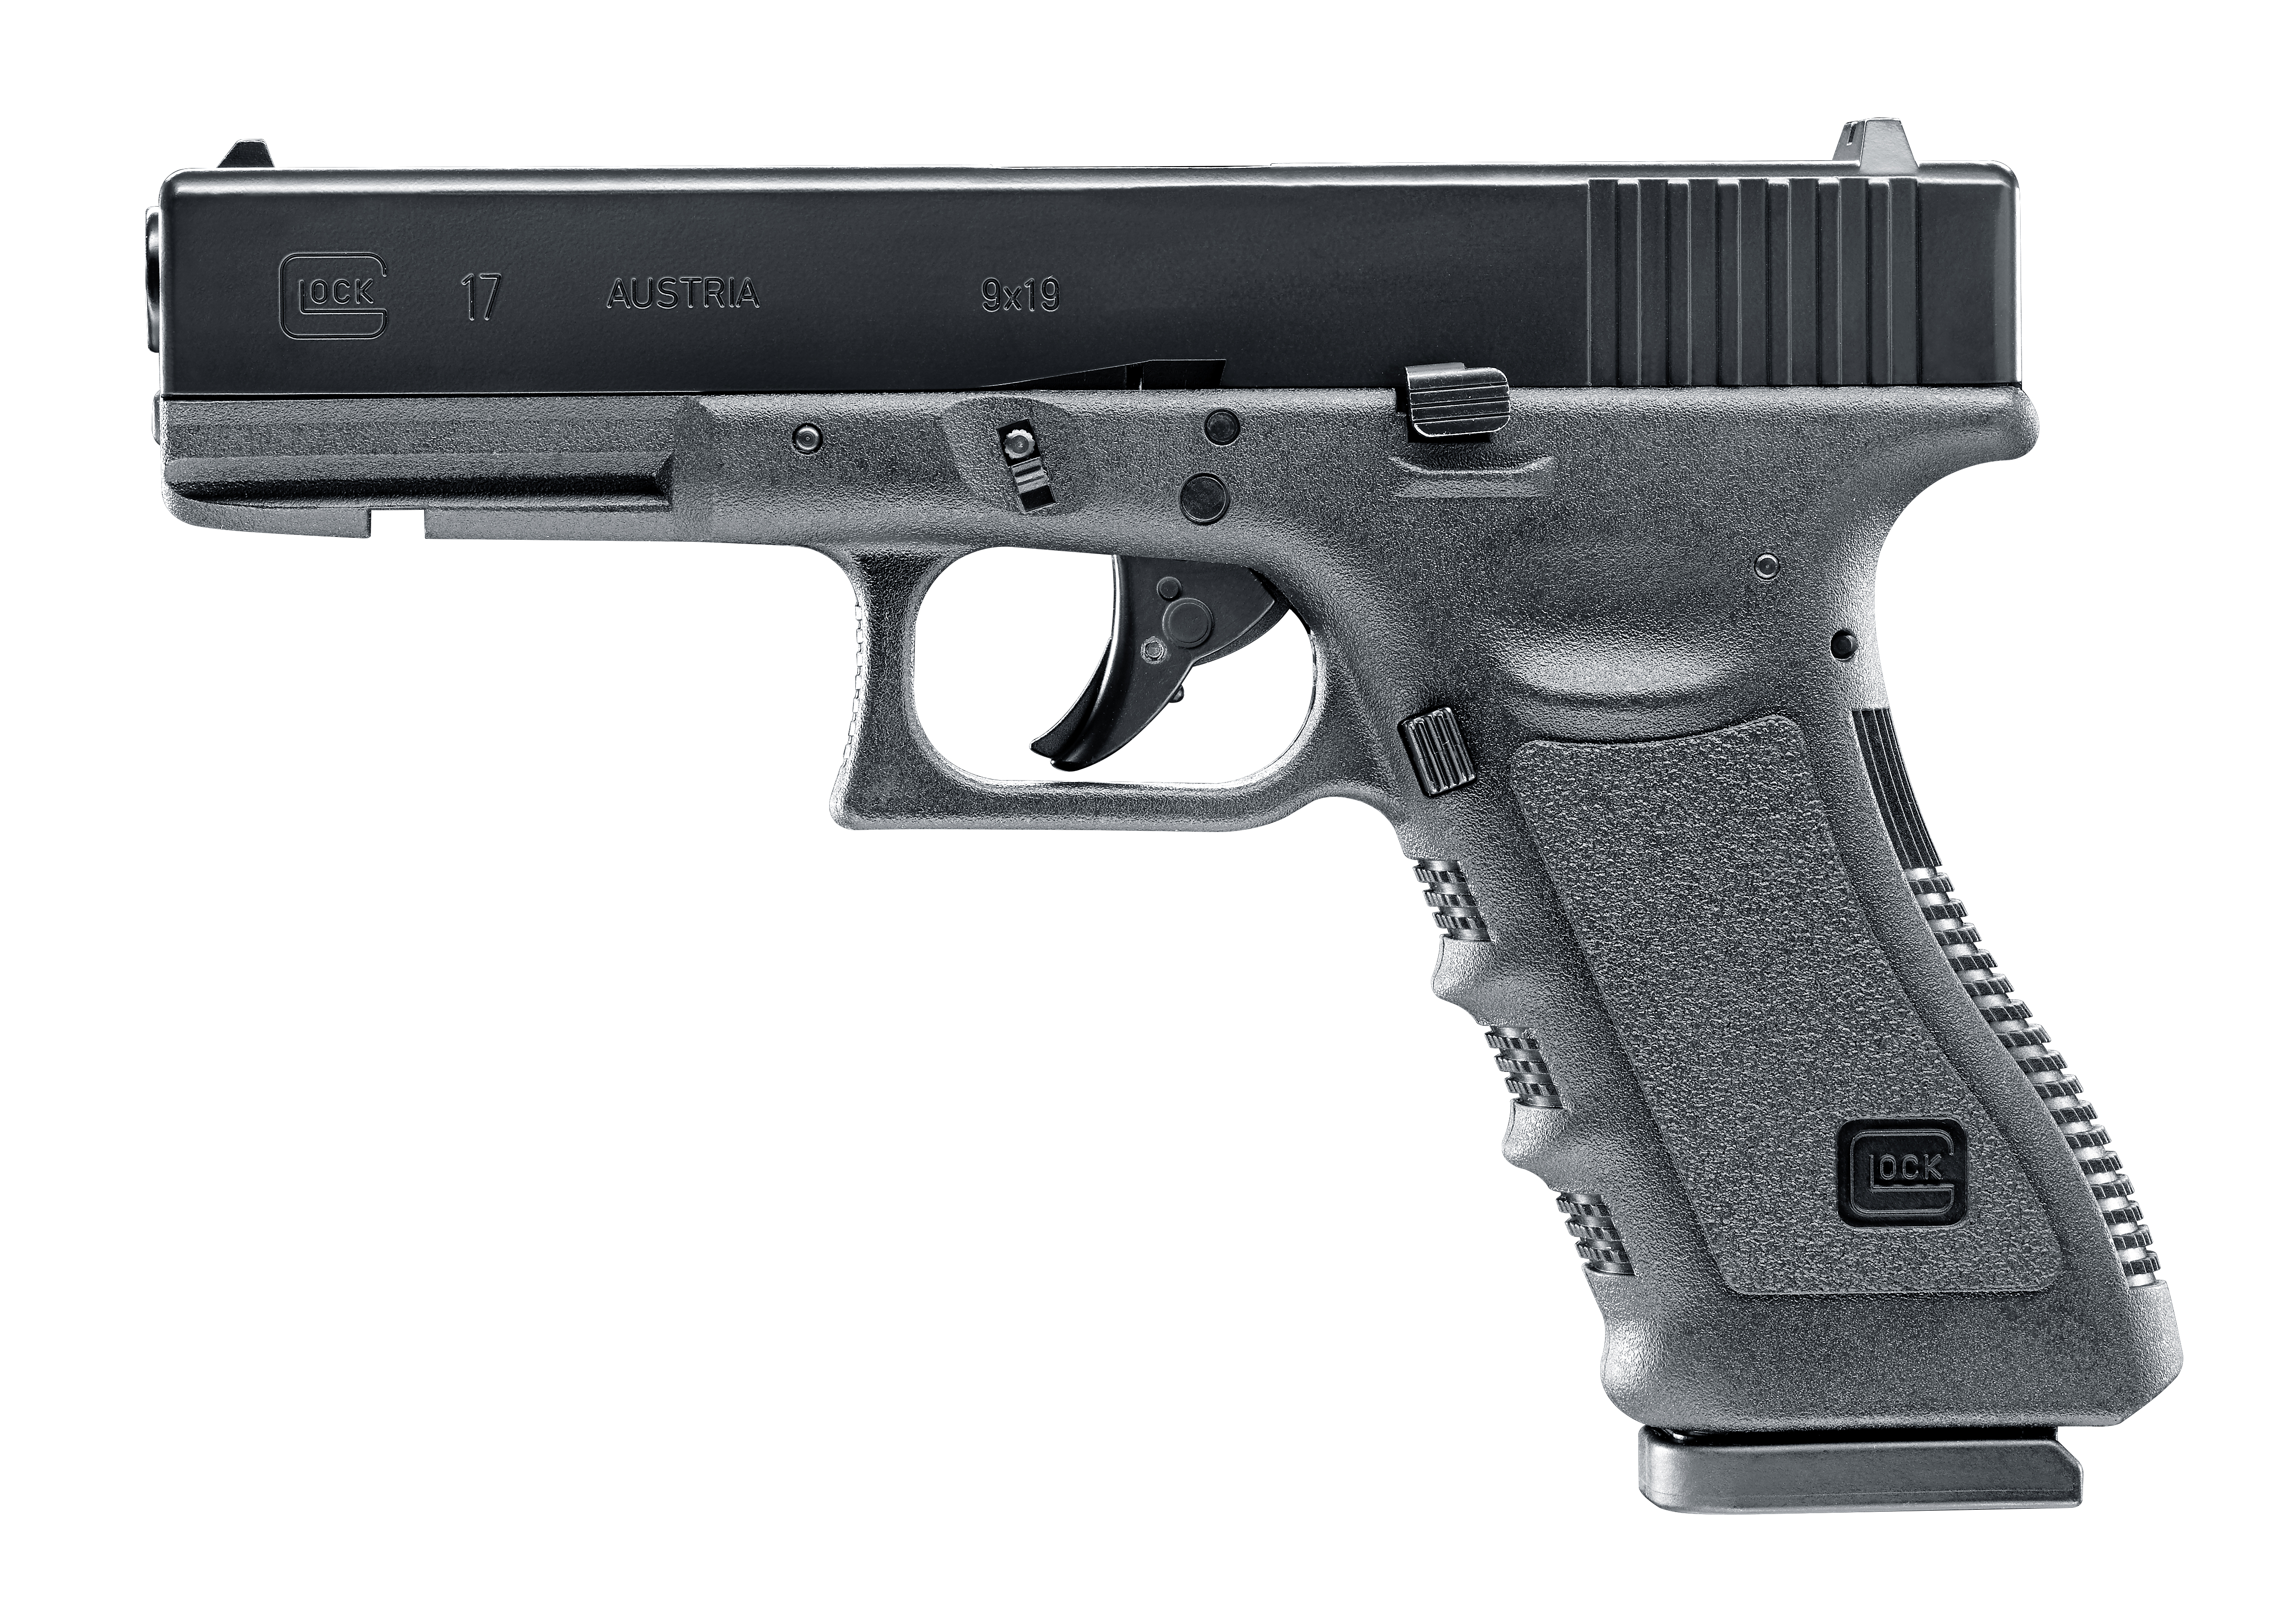 GLOCK (Umarex) Airsoft CO2 G17 1,8J